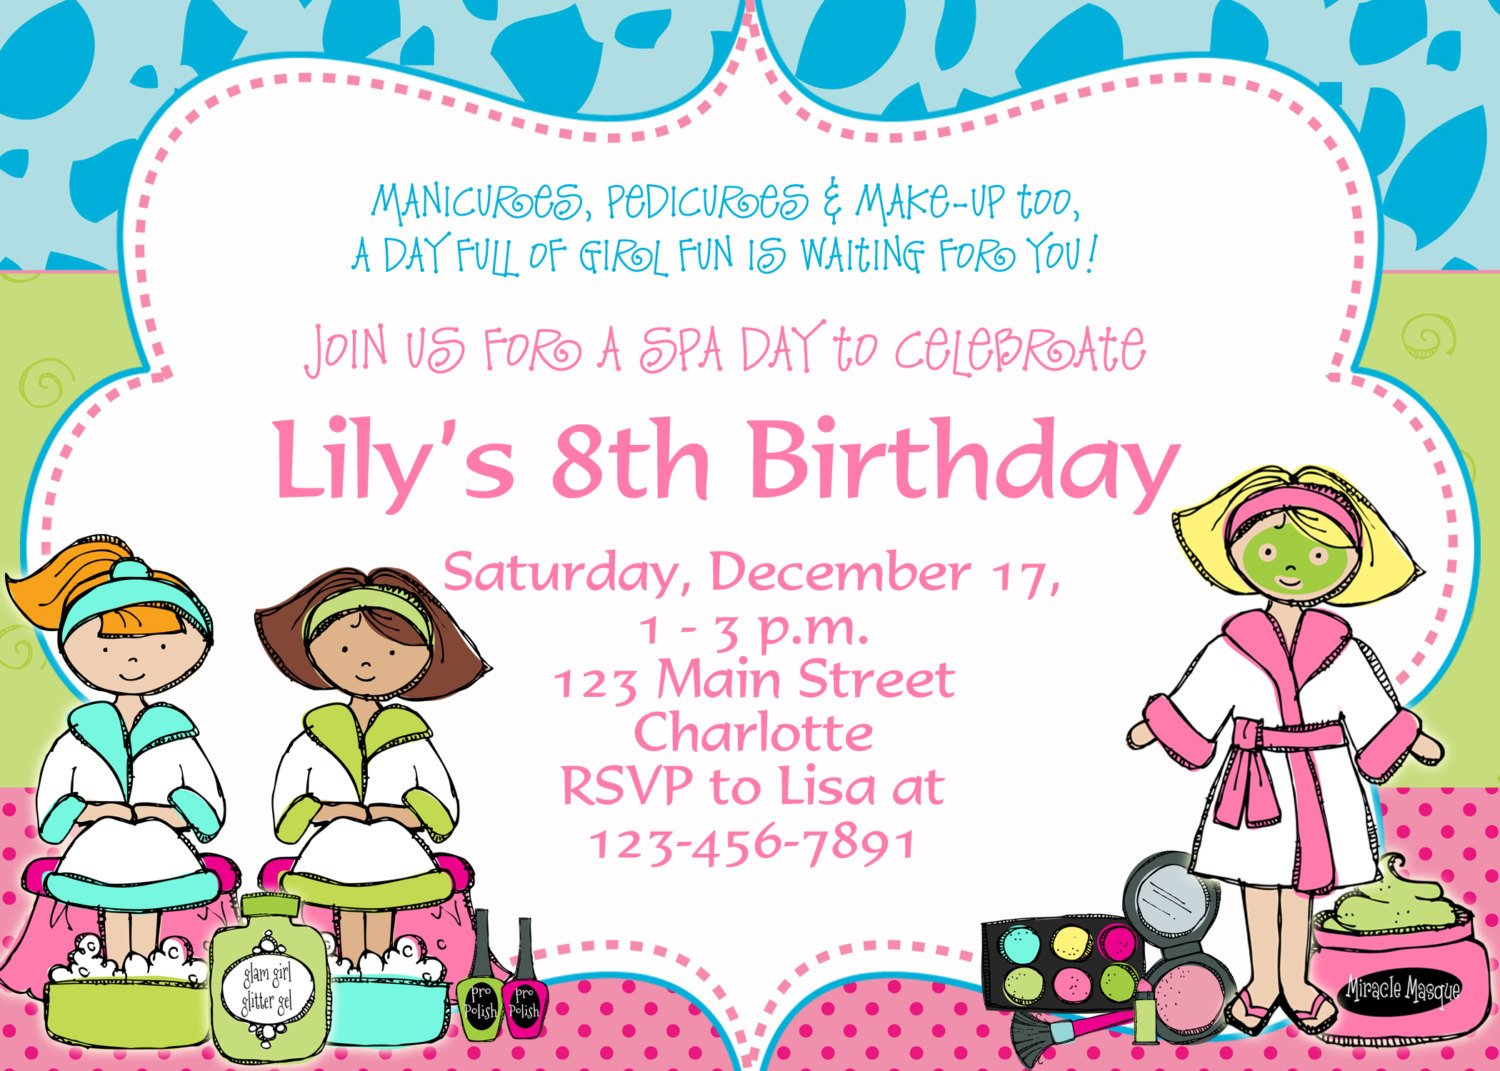 Kids Birthday Invite Templates kids birthday invitation wording – Spa Party Invitation Wording